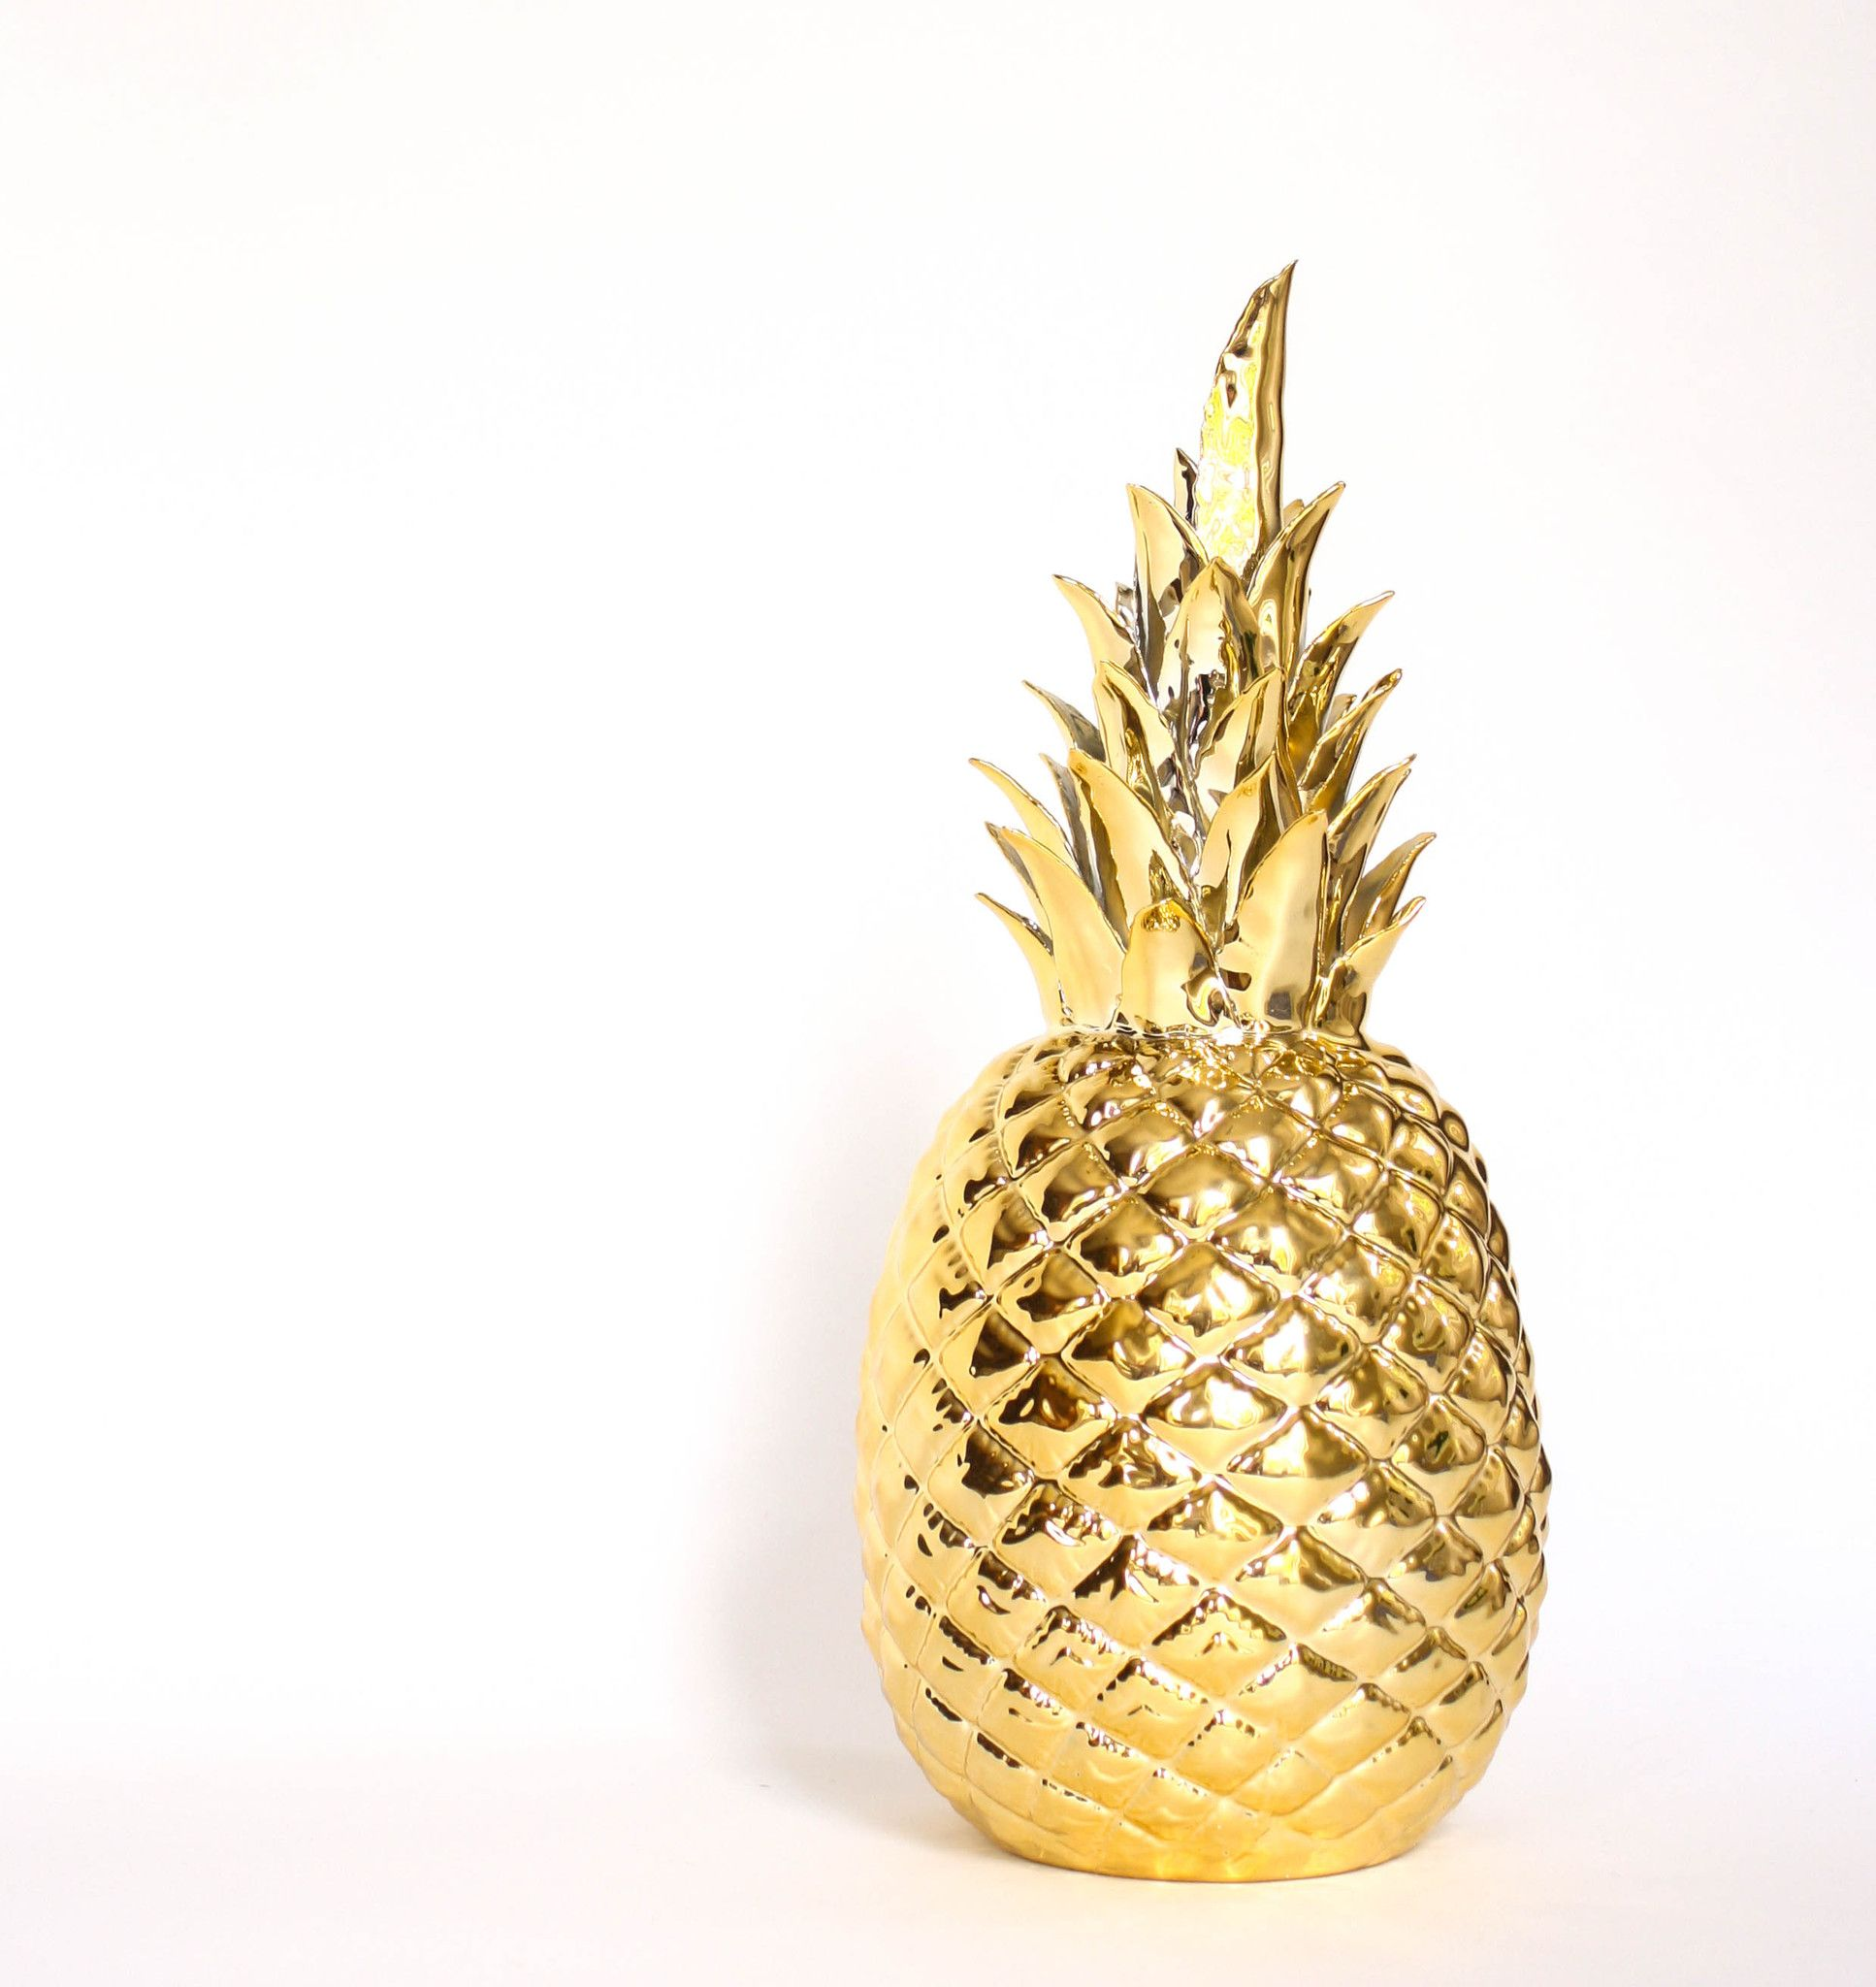 Pineapple Decorations For Kitchen Runners Rugs The Golden Jar House Ideas Pinterest Gold